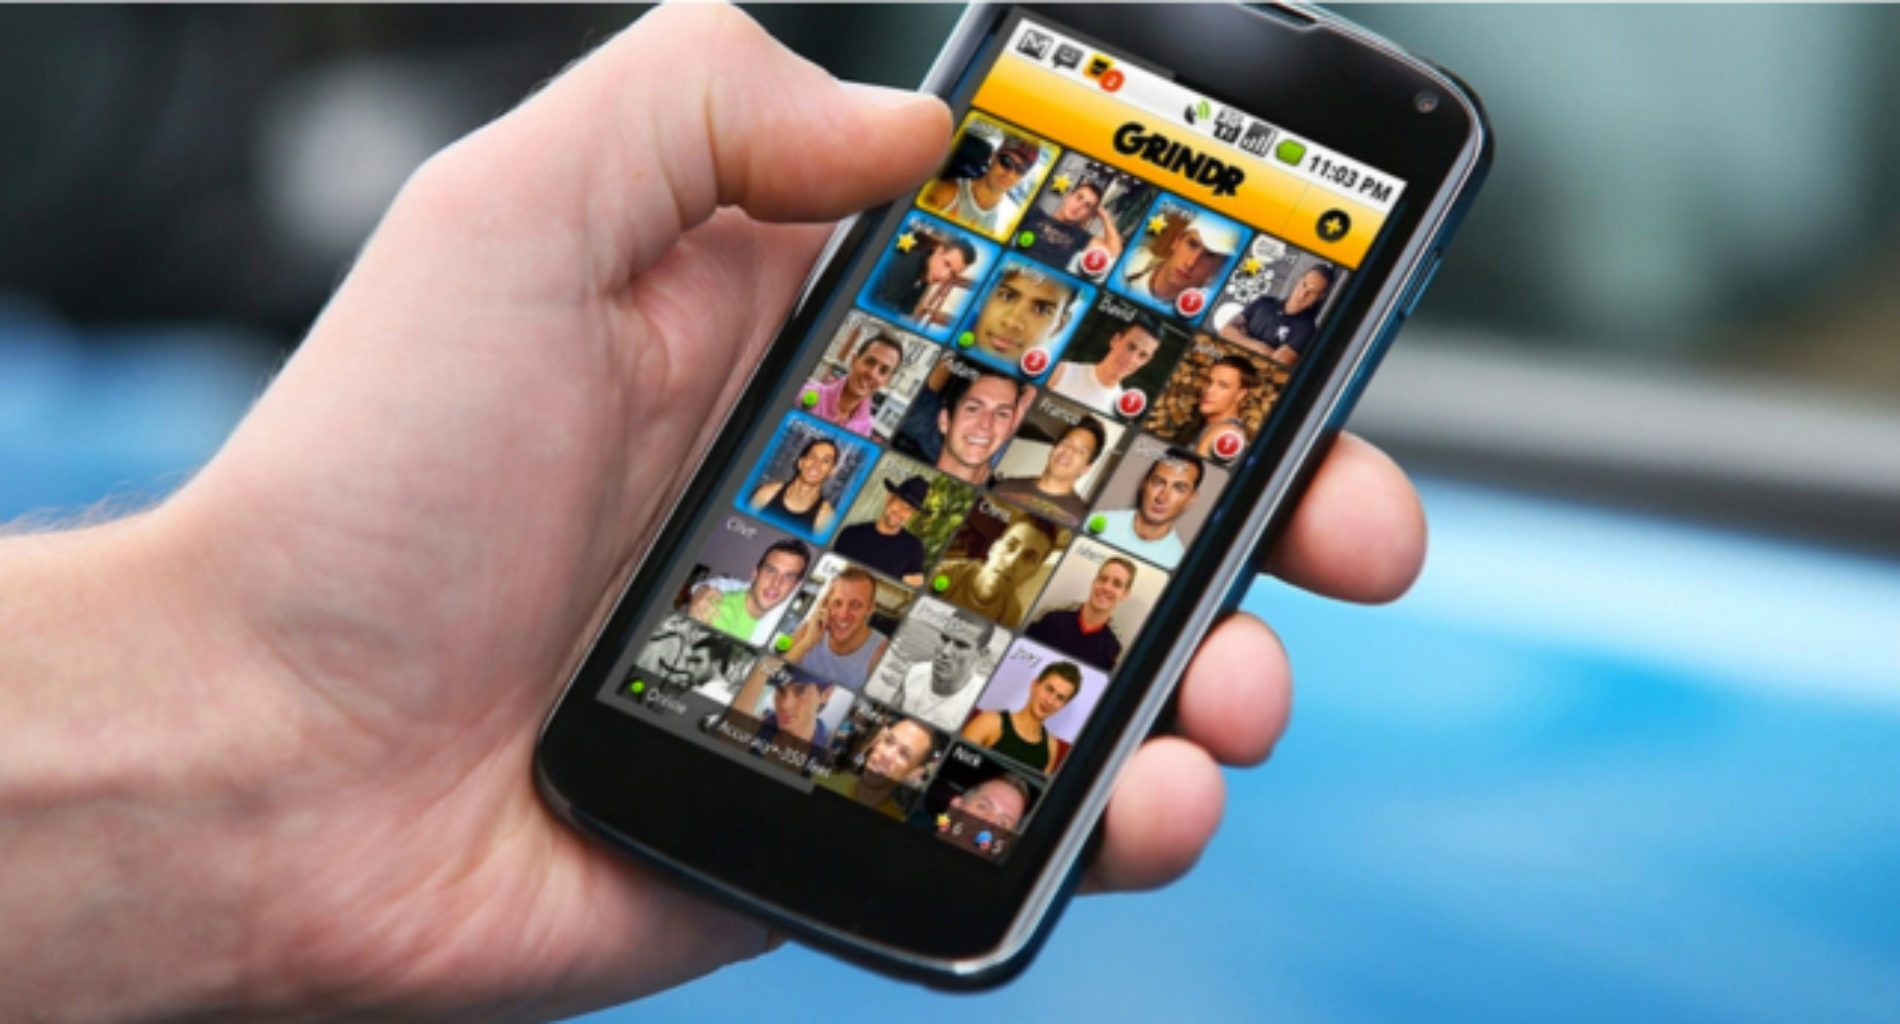 UK Foreign Office warns gay tourists about dangers of Grindr abroad